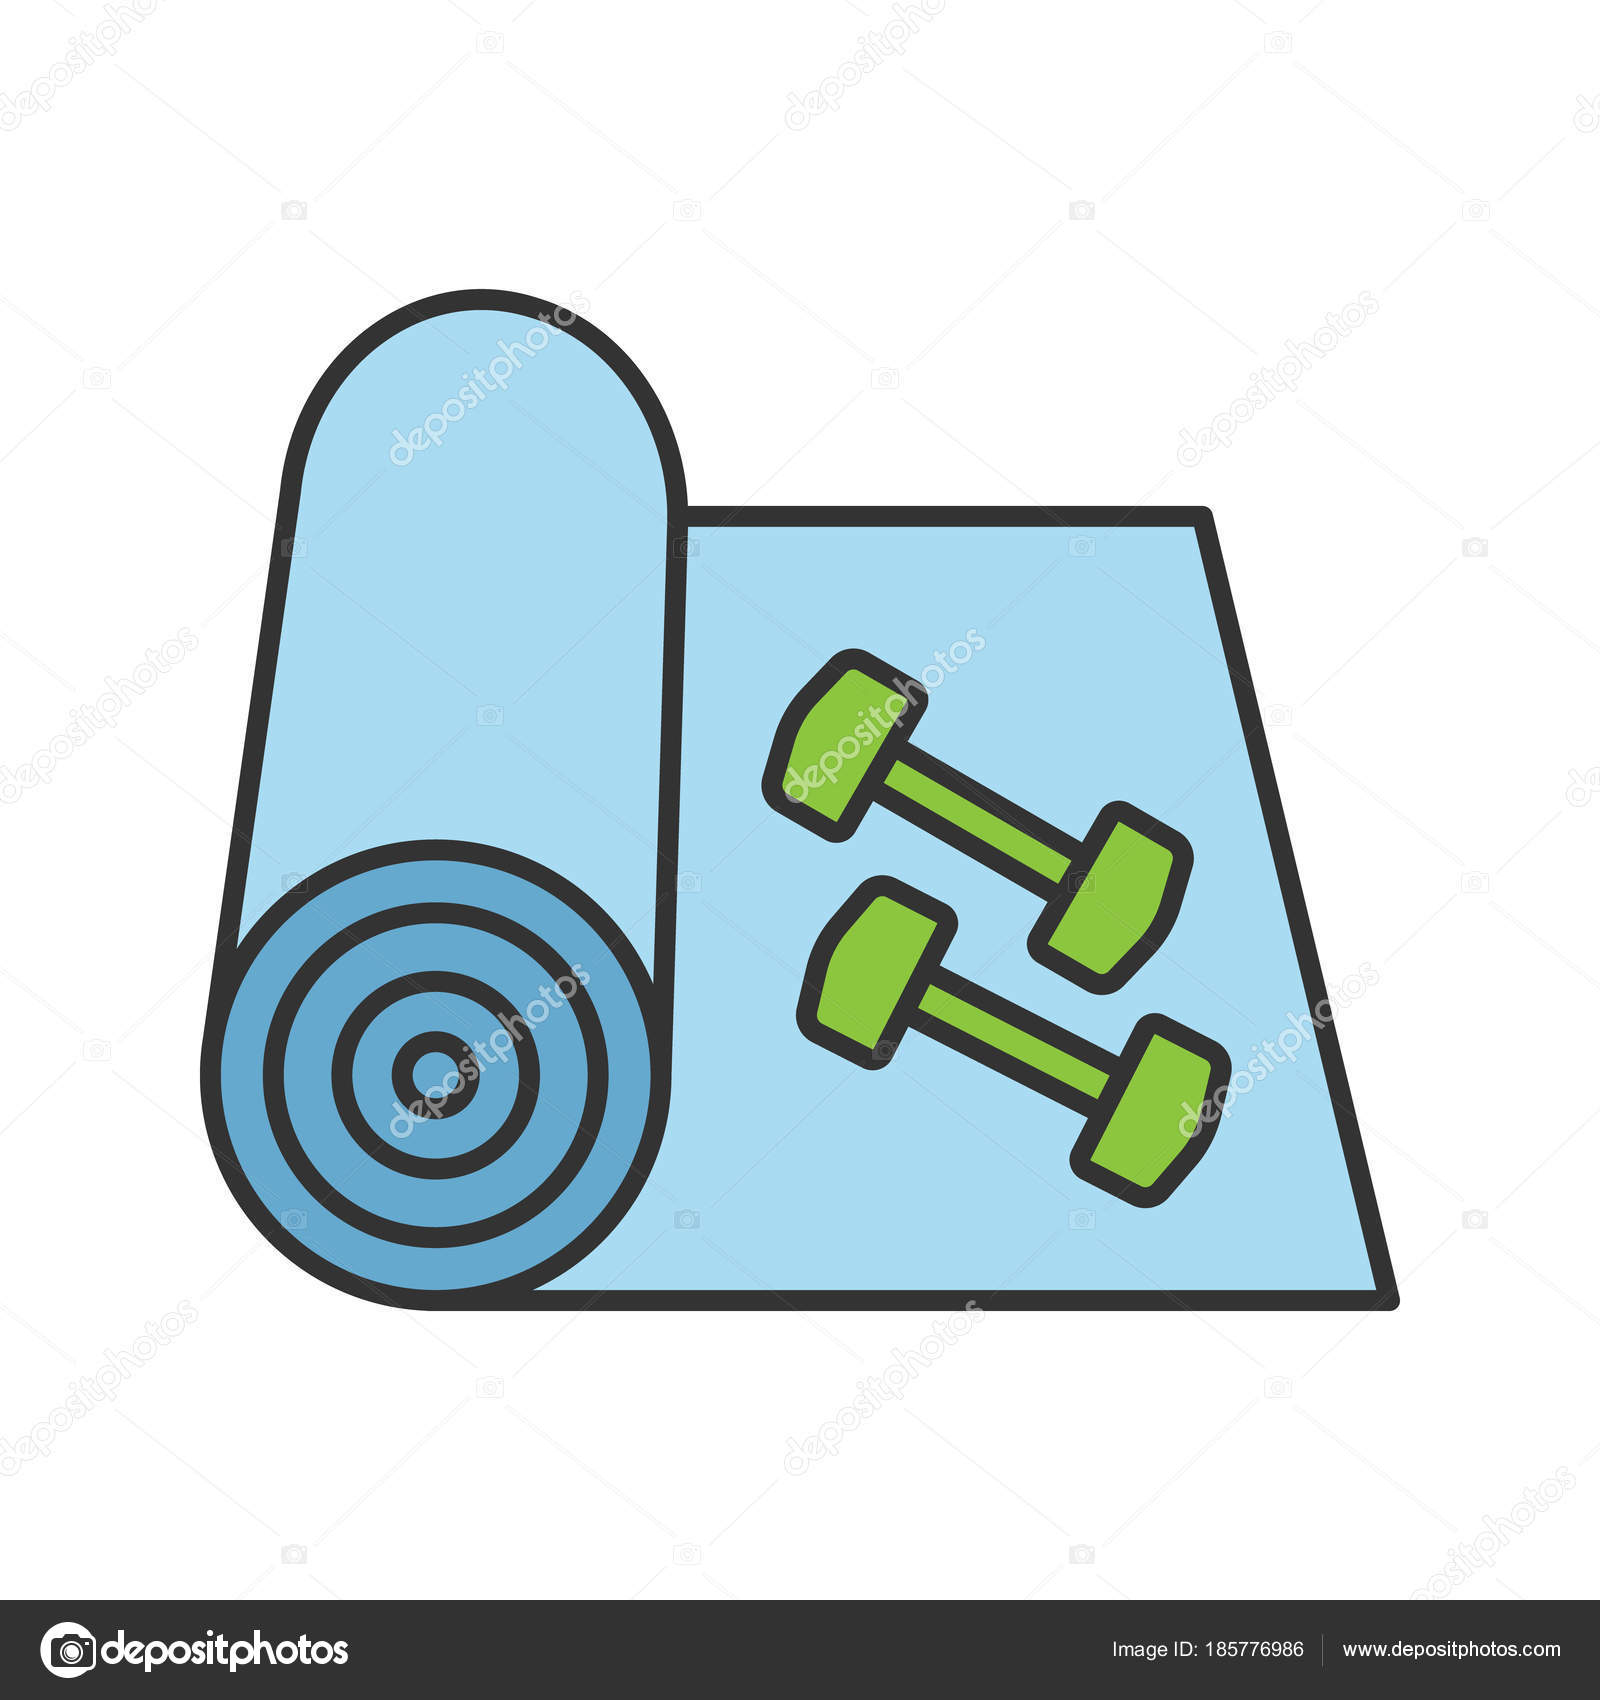 Training Mat Dumbbells Color Icon Yoga Carpet Fitness Equipment Isolated Stock Vector